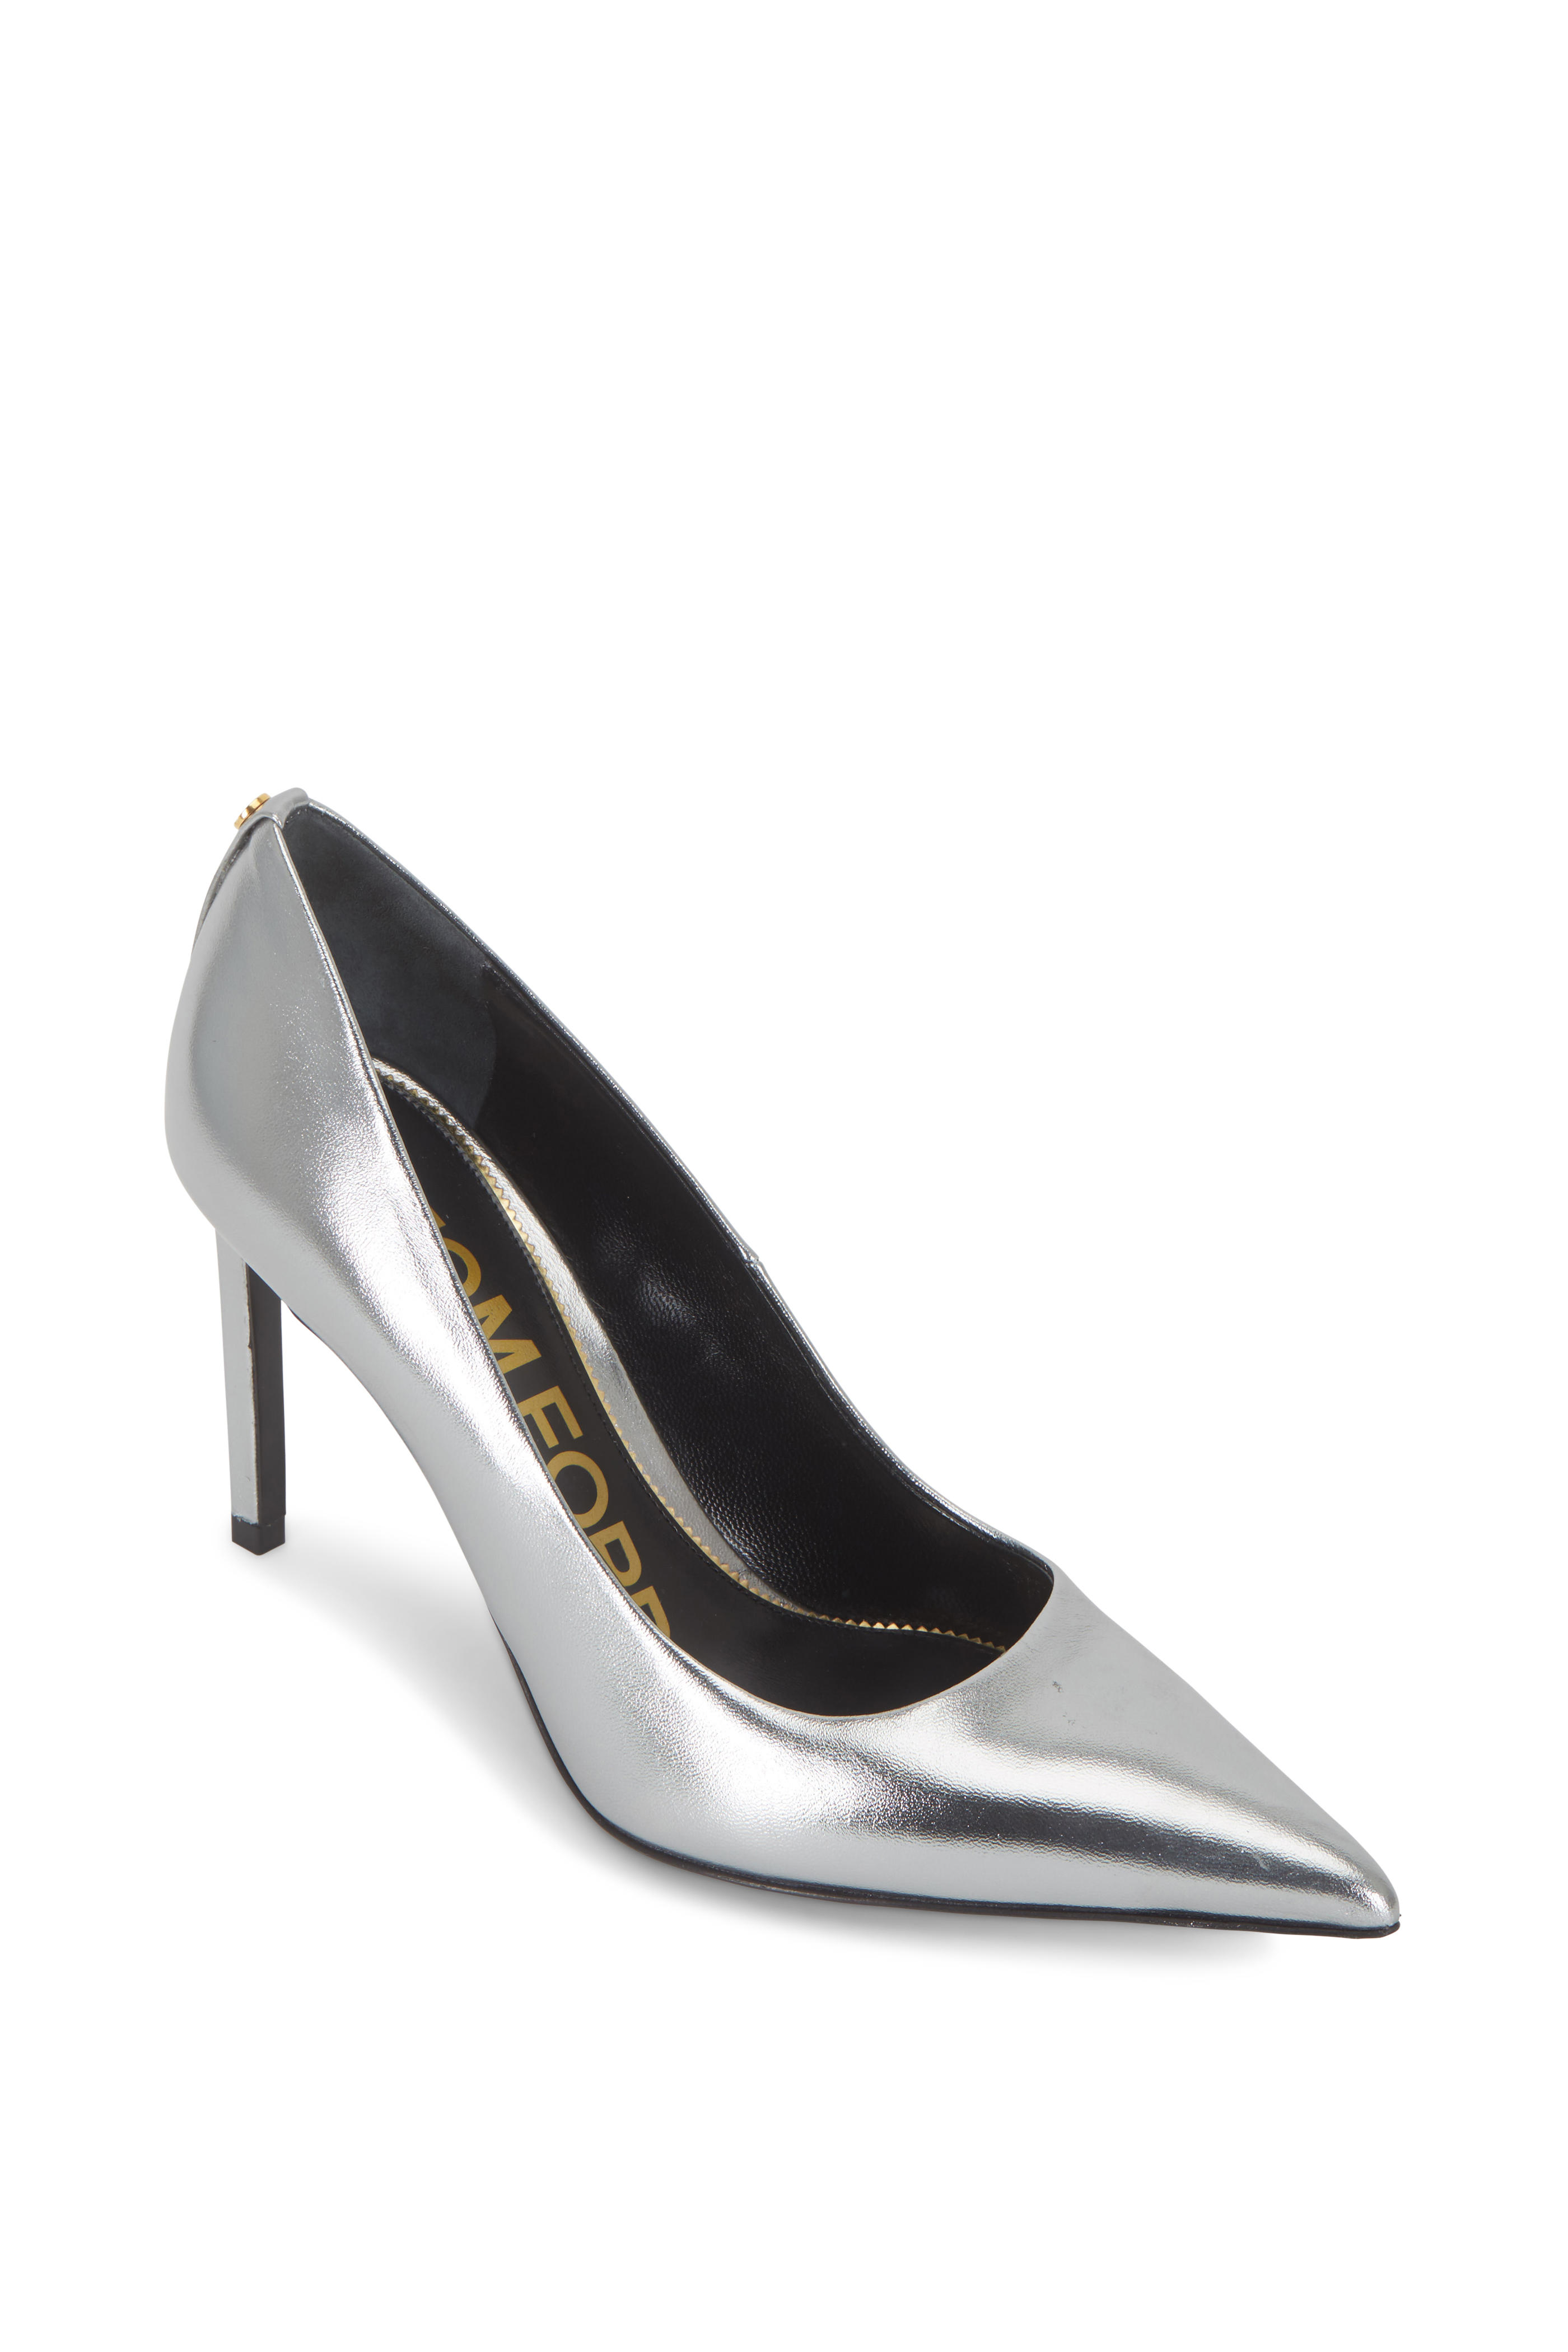 6fe701b7d9 Tom Ford - Silver Metallic Leather Classic Pointed Pump, 90mm ...